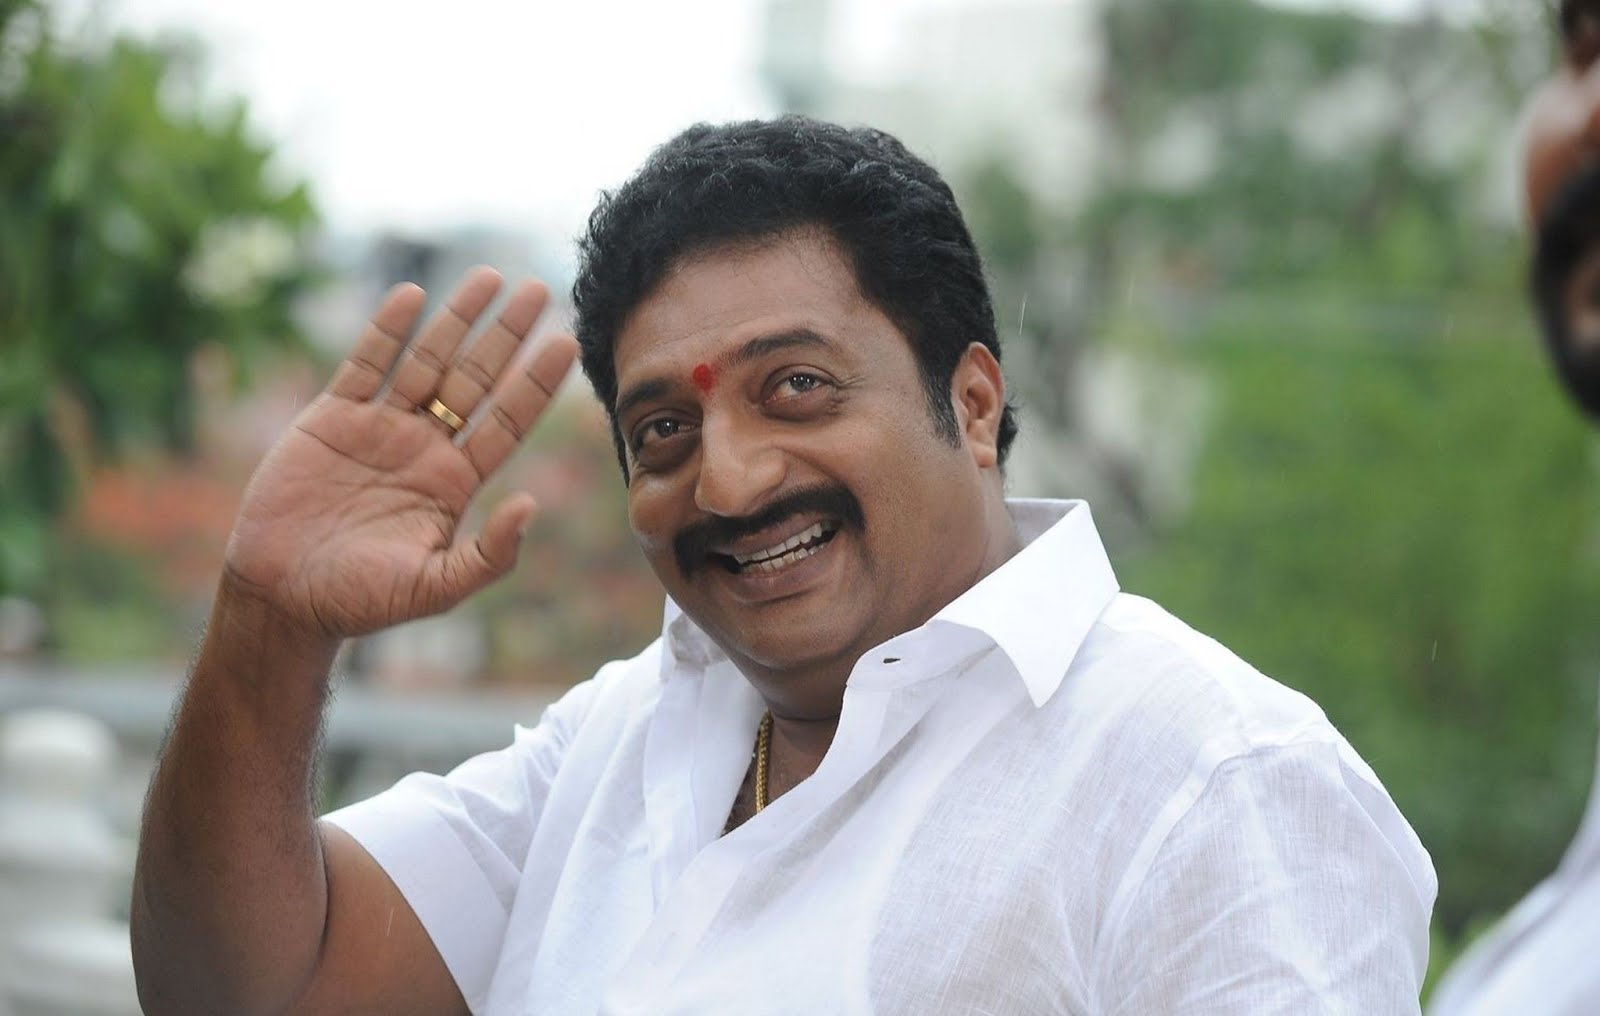 ramgopal-varma-says-ntr-role-prakash-raj-not-true-